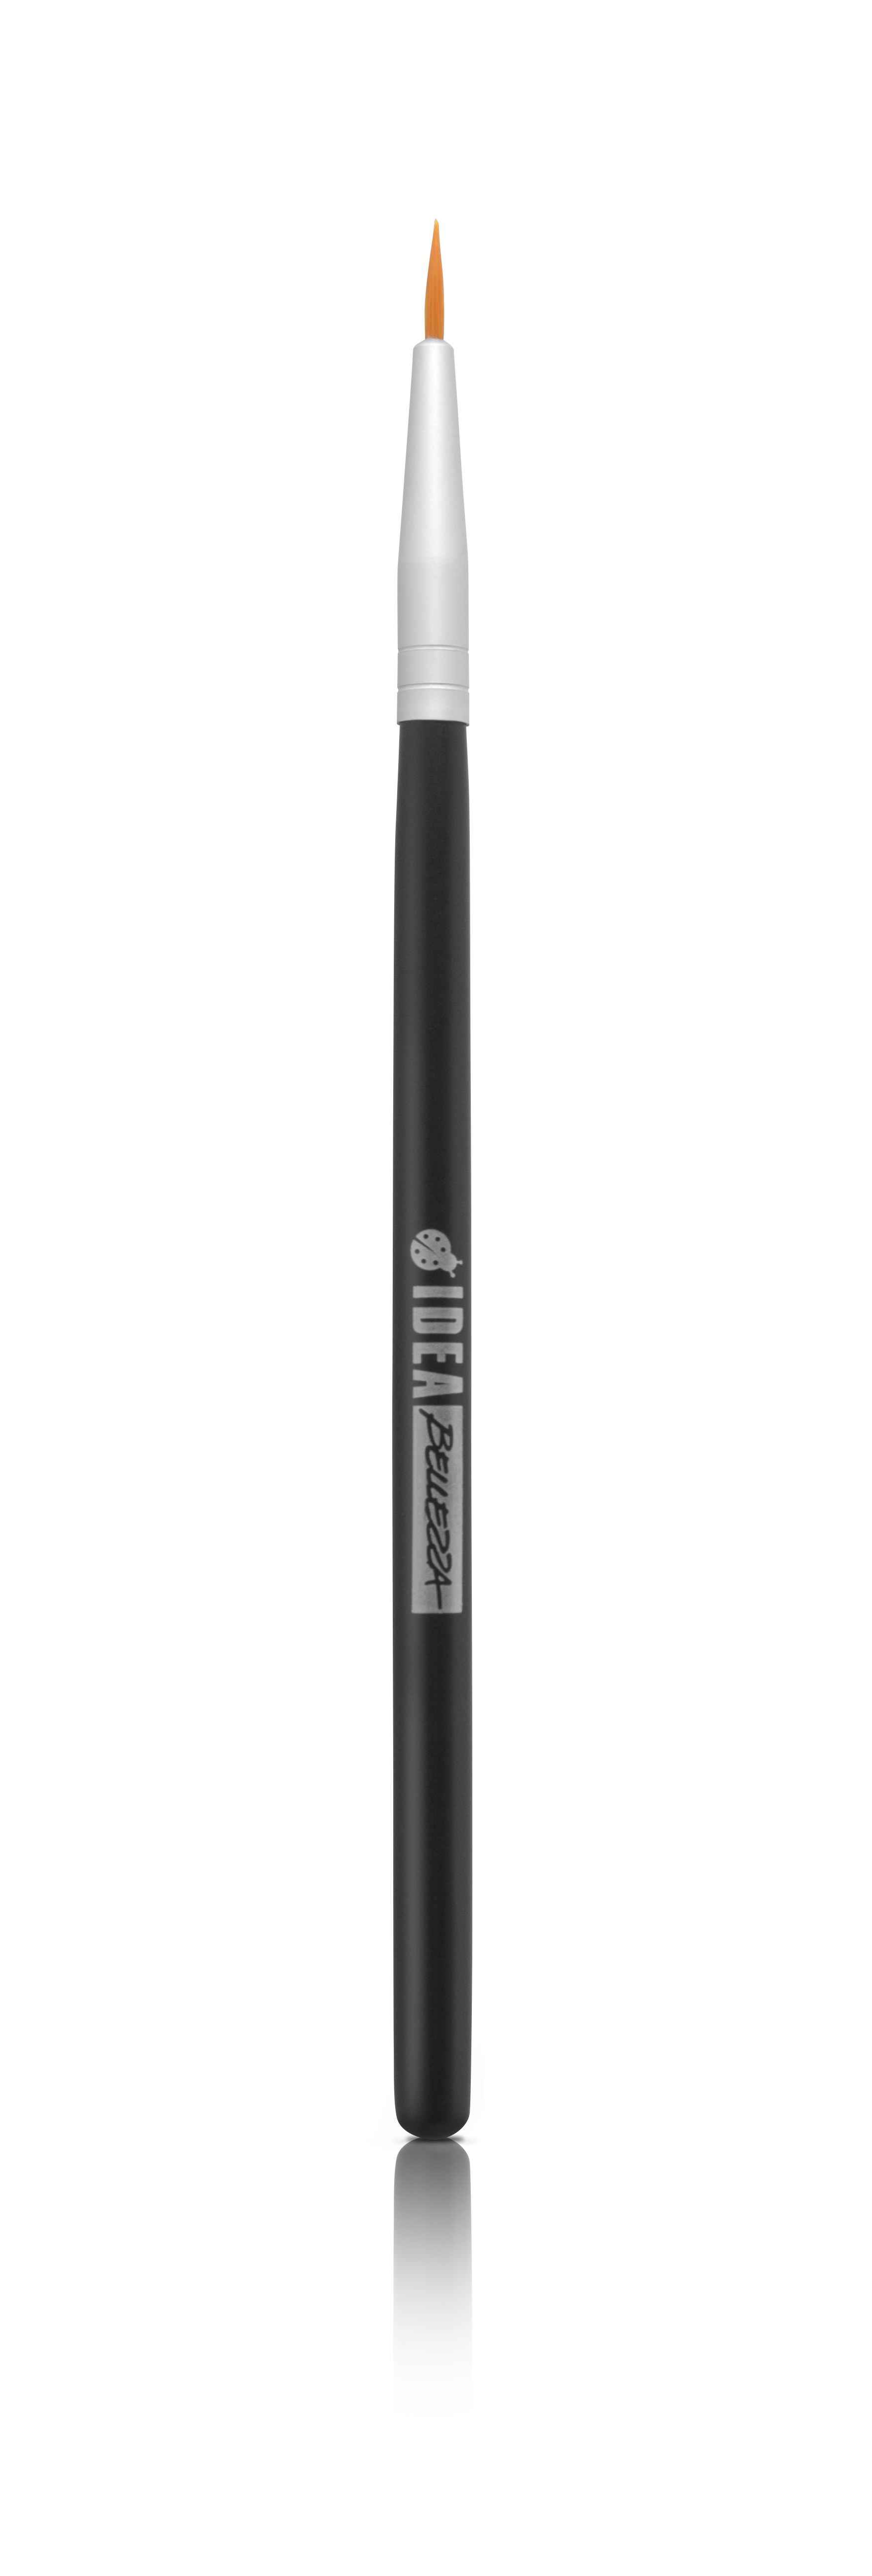 Image of IdeaBellezza Cosmetics Pennello Eyeliner 8054934793257